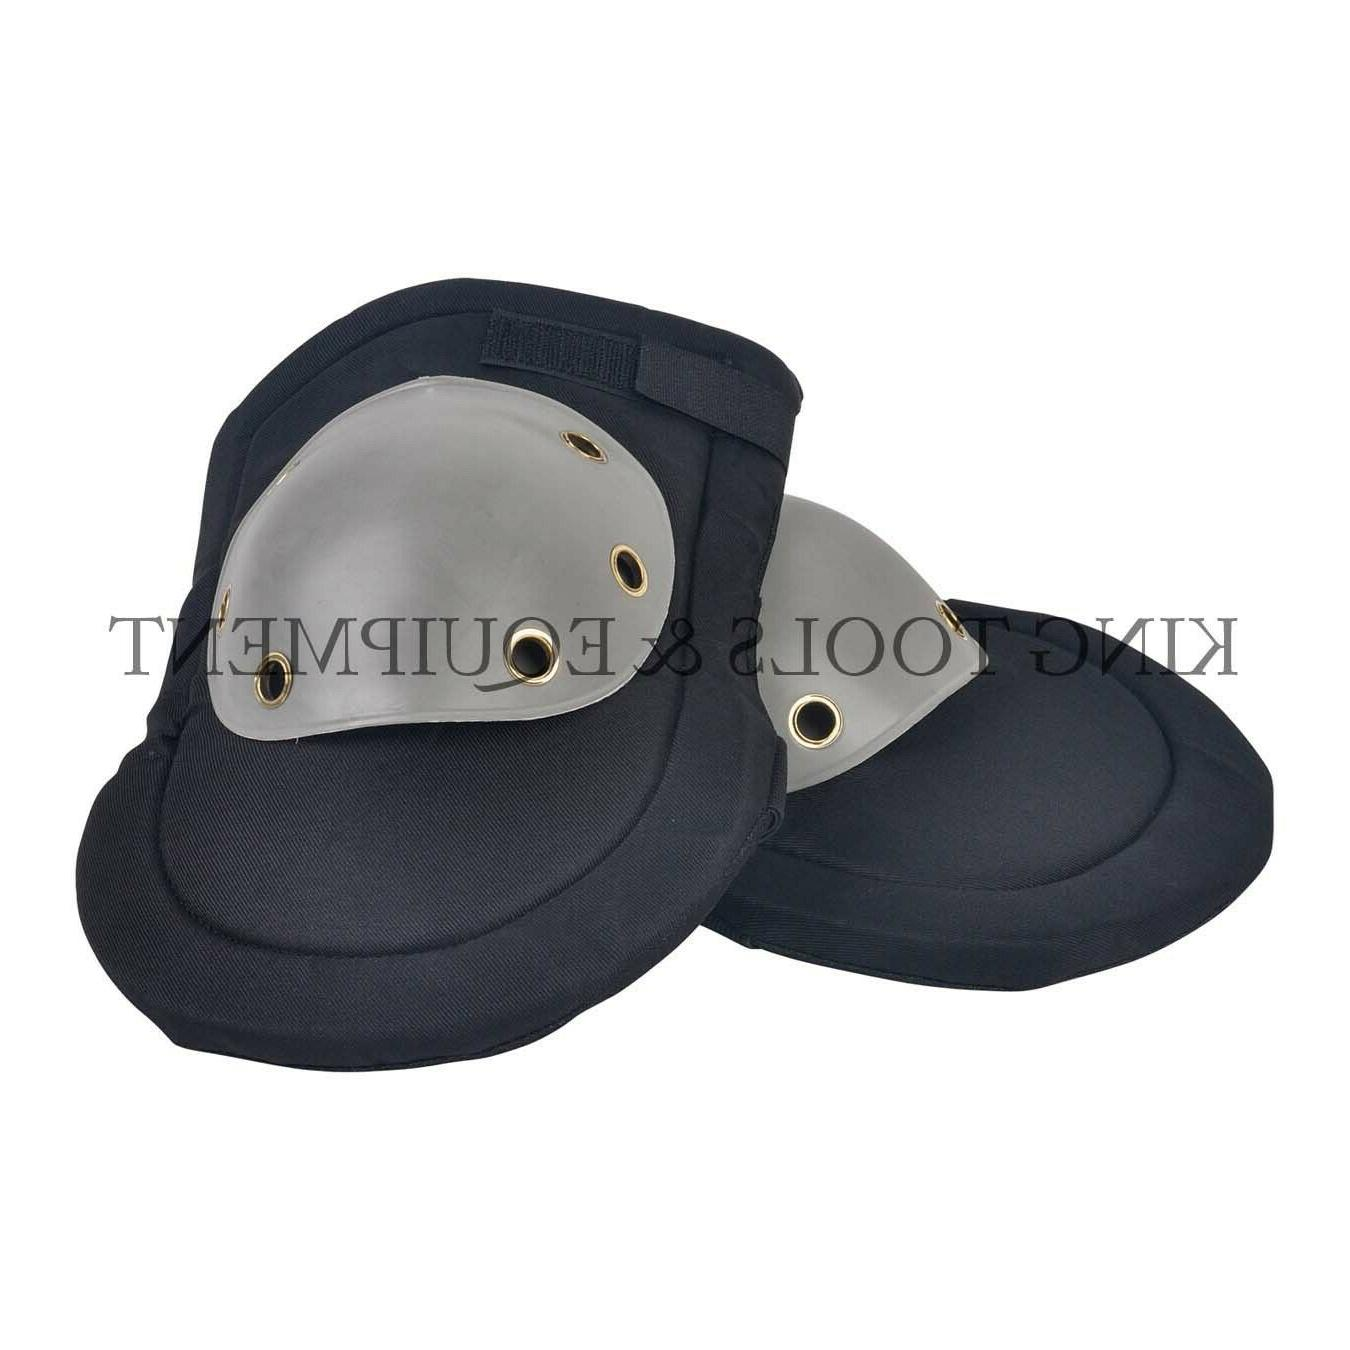 knee pads with hard plastic cap a